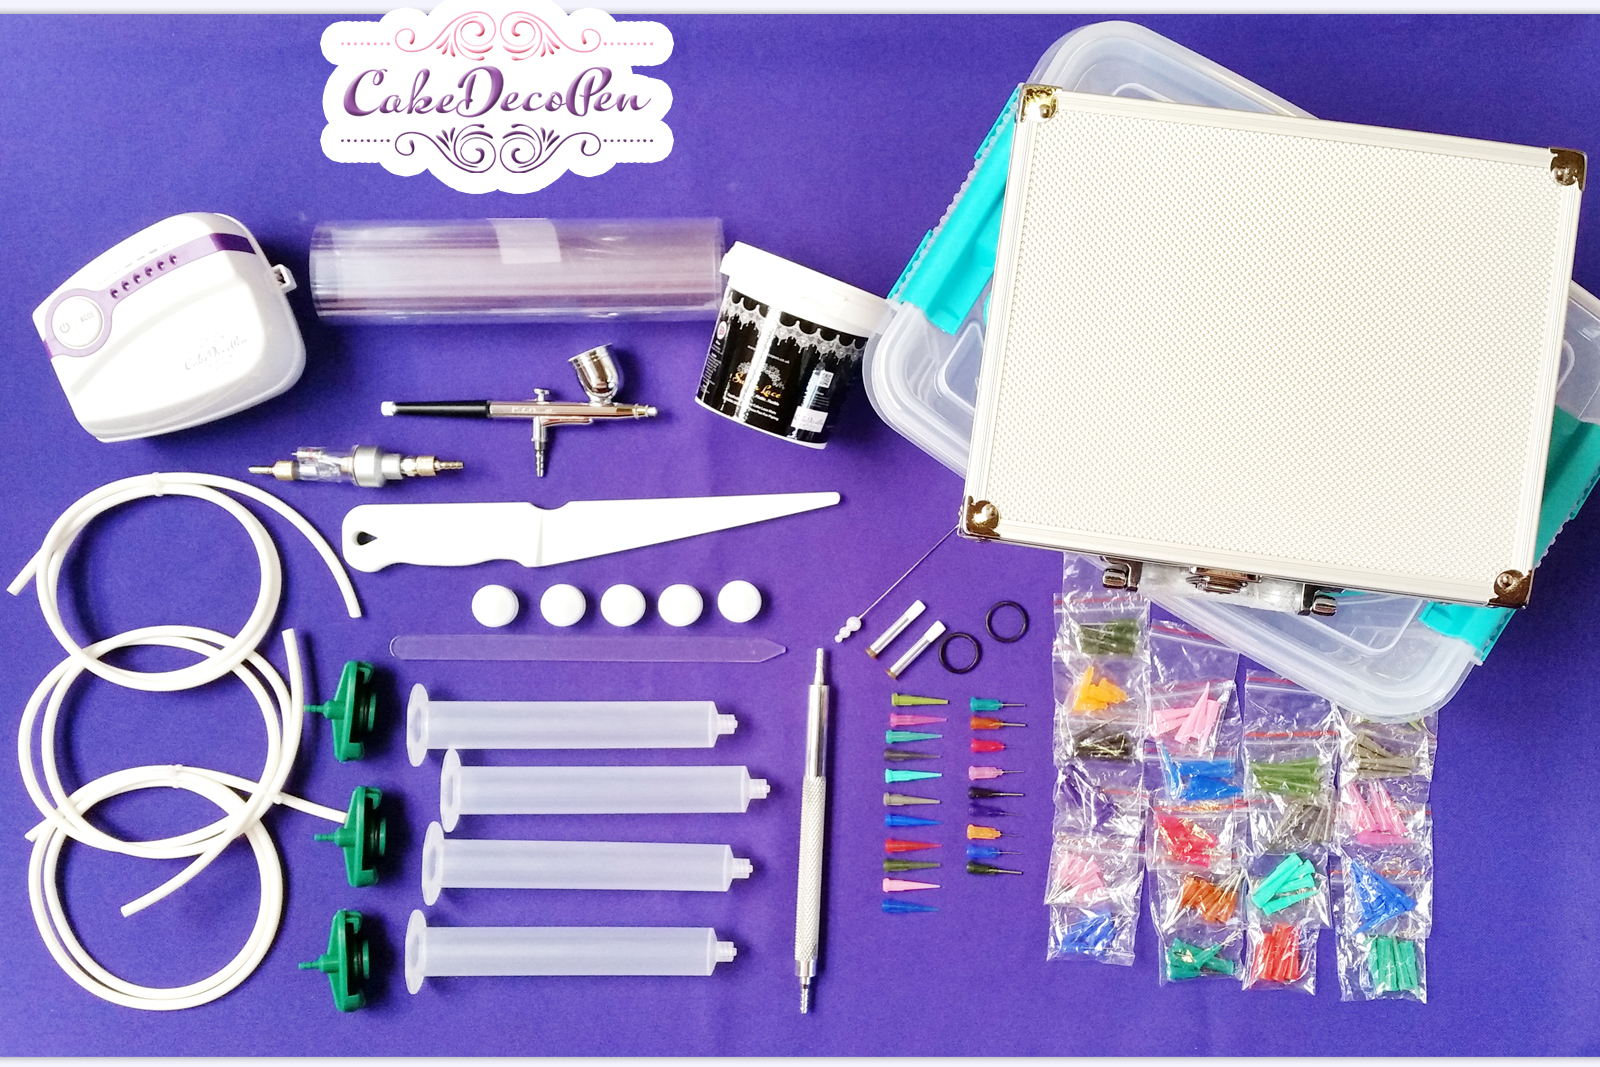 Cake Deco Pen Machine | Dual Action Kit | Deco Pen Kit + Air Brush Kit | Cake Cupcake Cookie | Makers and Decorators | Christmas Gift Ideas